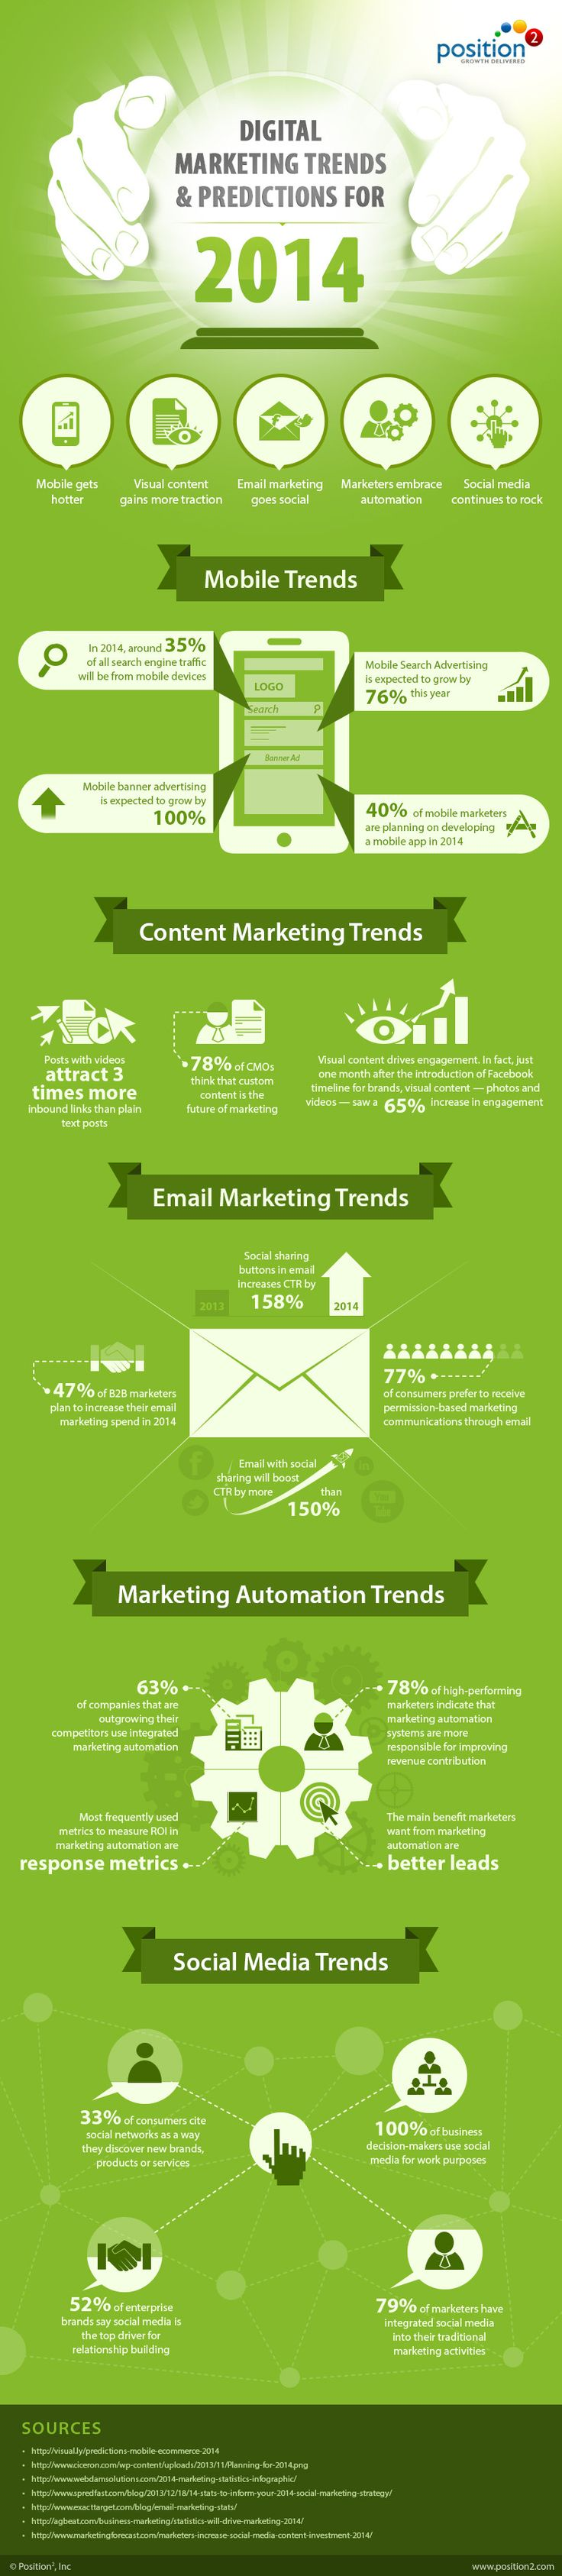 Digital Information World: 19 Mobile, Content, Email, Social Media, And Marketing Automation Stats For 2014